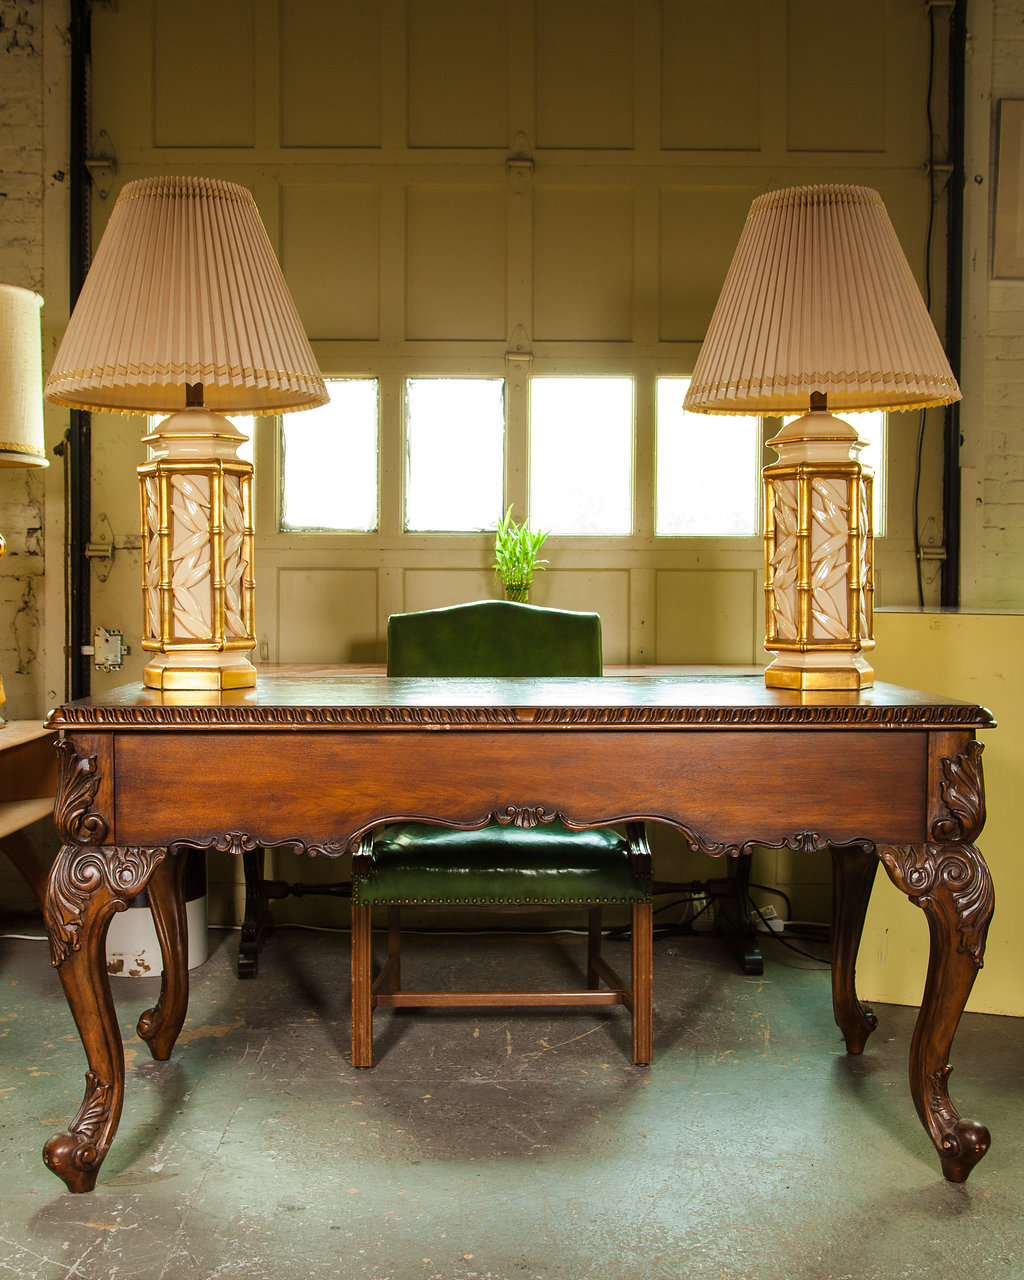 Nothing says horror movie like like a solid wood, antique desk with intricate detail on its legs. This beautiful piece could scare the best of 'em into getting that work done to celebrate the times.